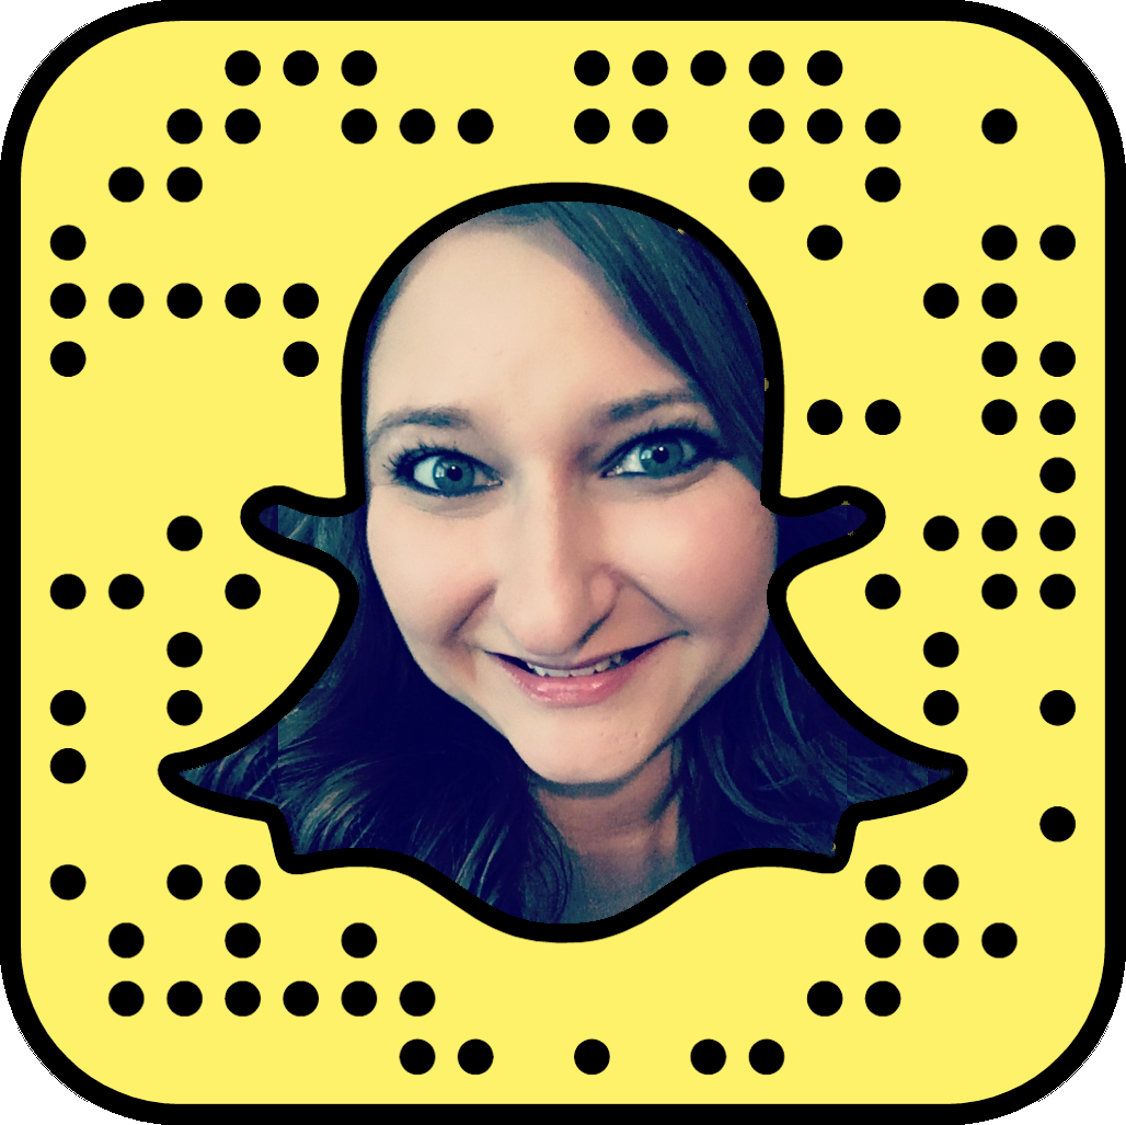 This is my blanket HELLO! I'm your #ChatSnap host Kristy from Houston, TX. Watch my tweets for the questions! :) https://t.co/EGXO3PjLCO